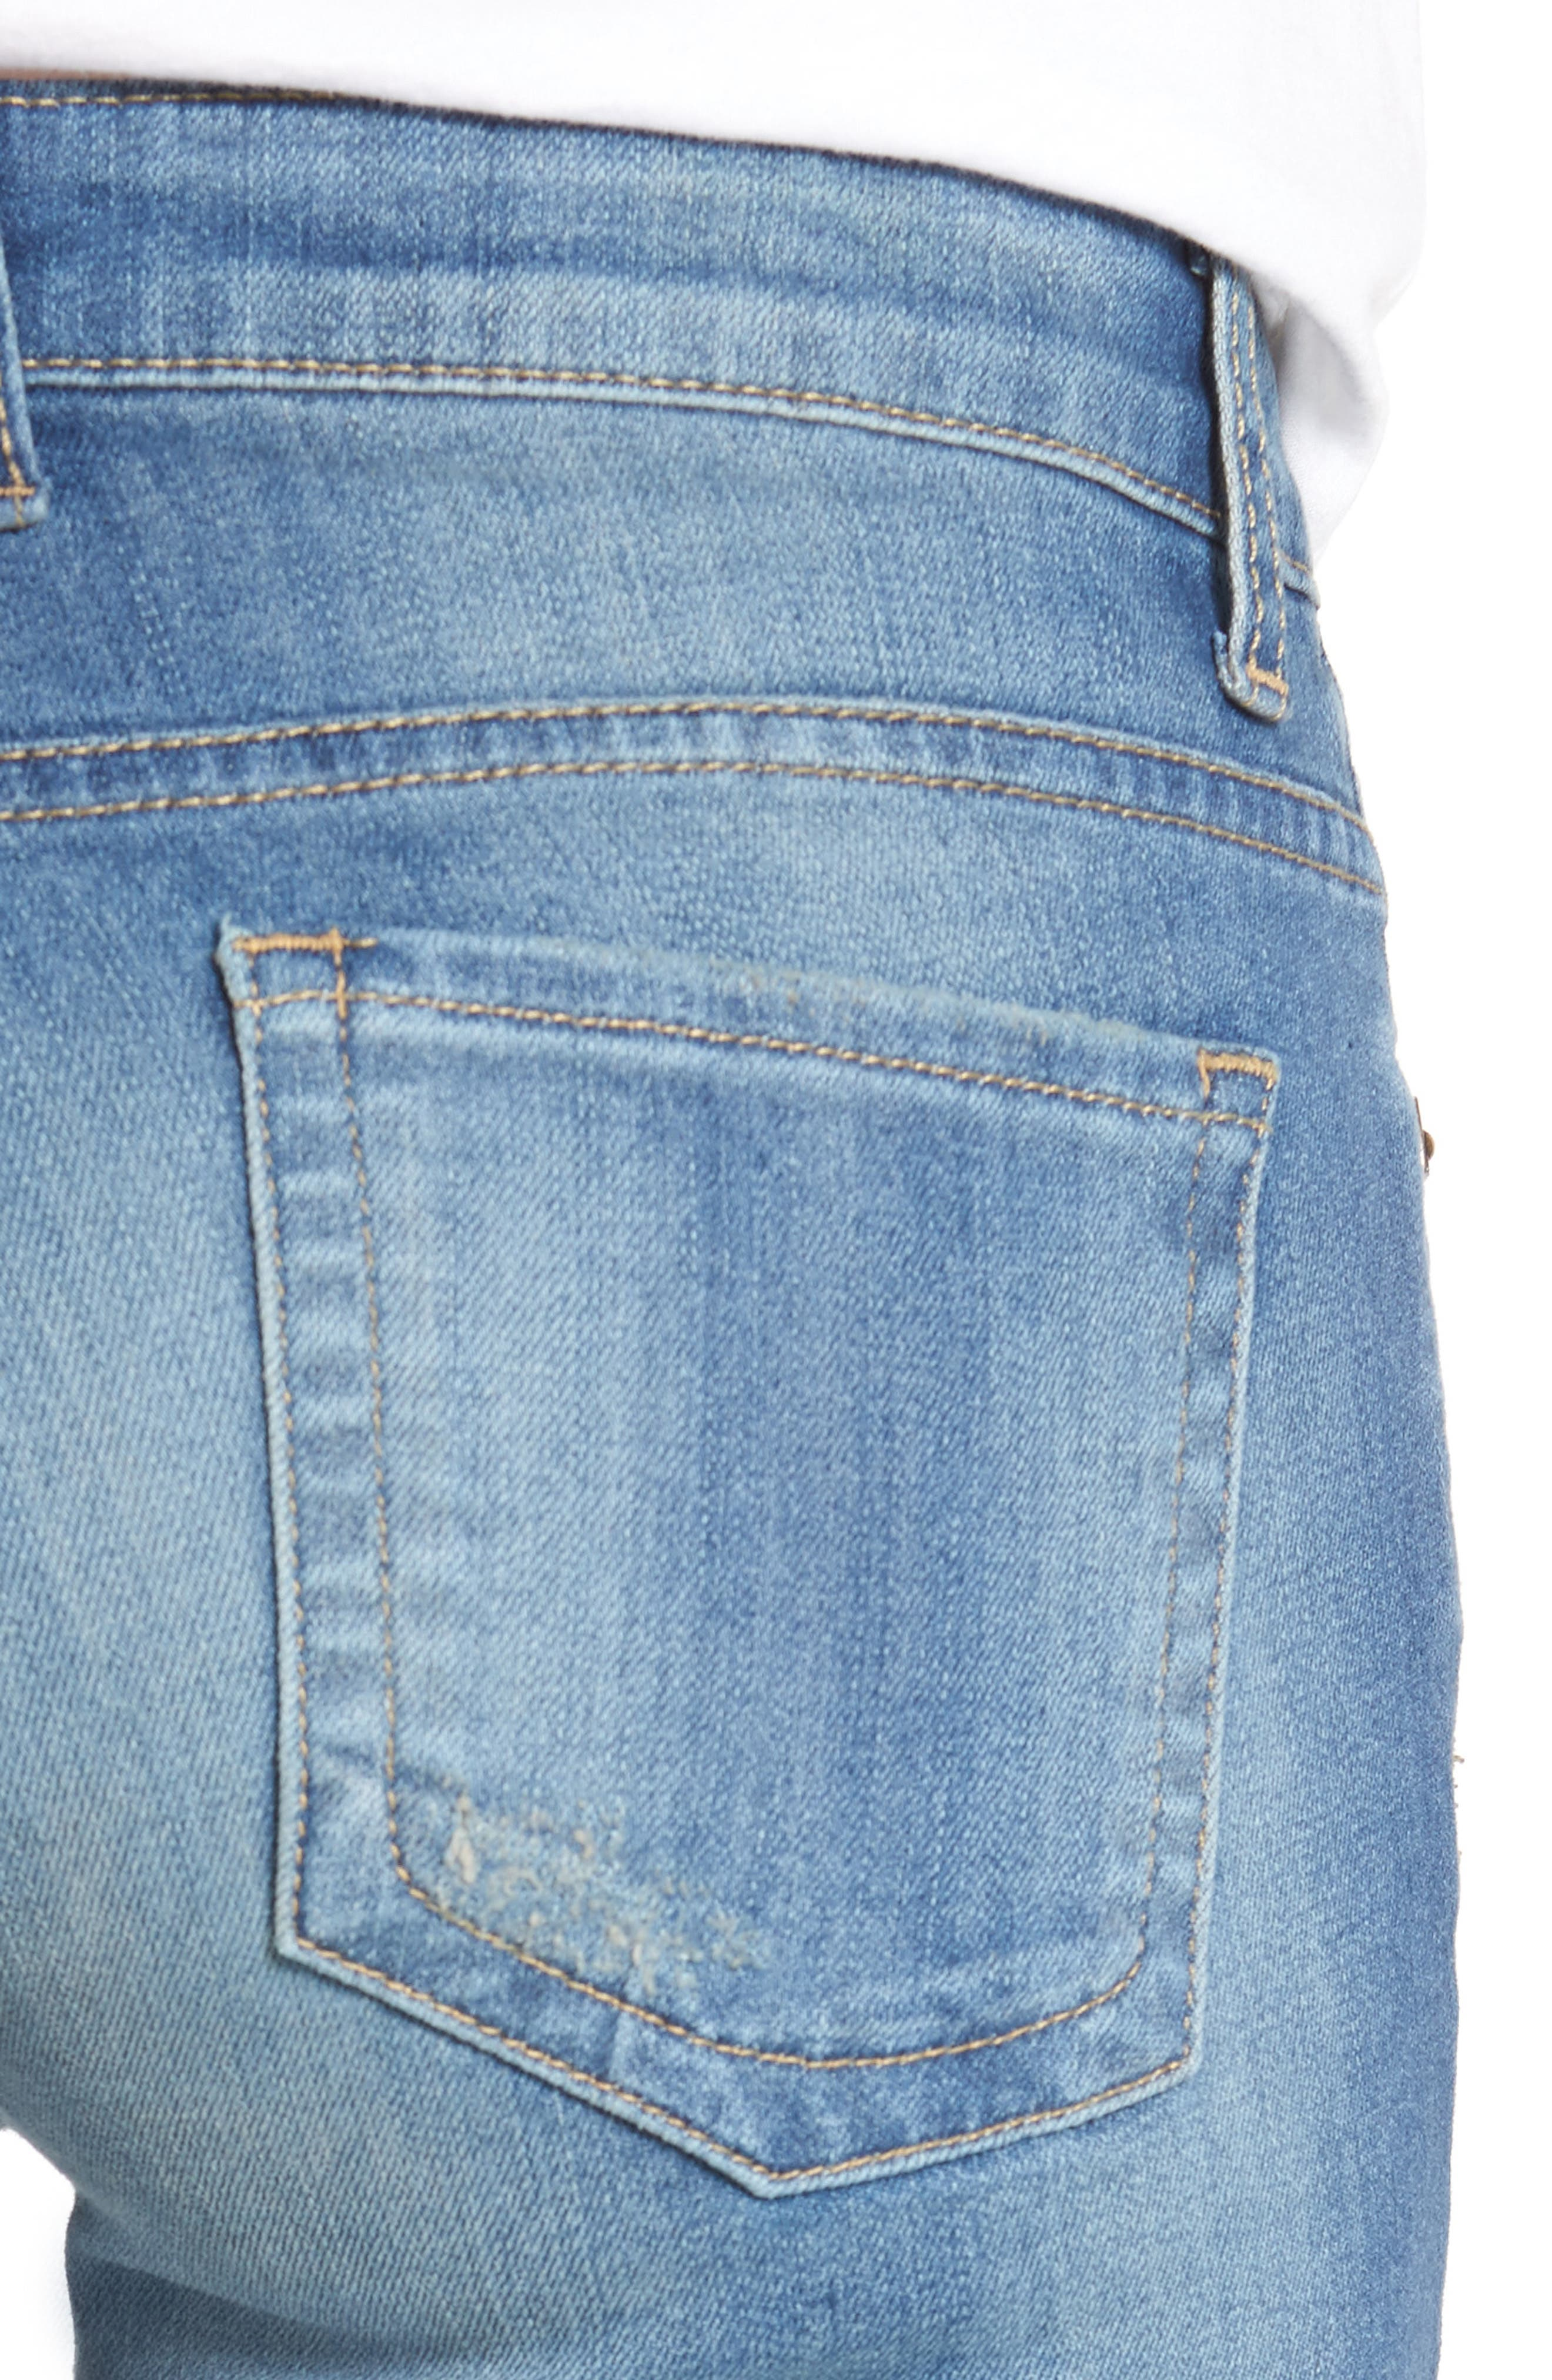 Alternate Image 4  - KUT from the Kloth Catherine Distressed Boyfriend Jeans (Fiery) (Regular & Petite)